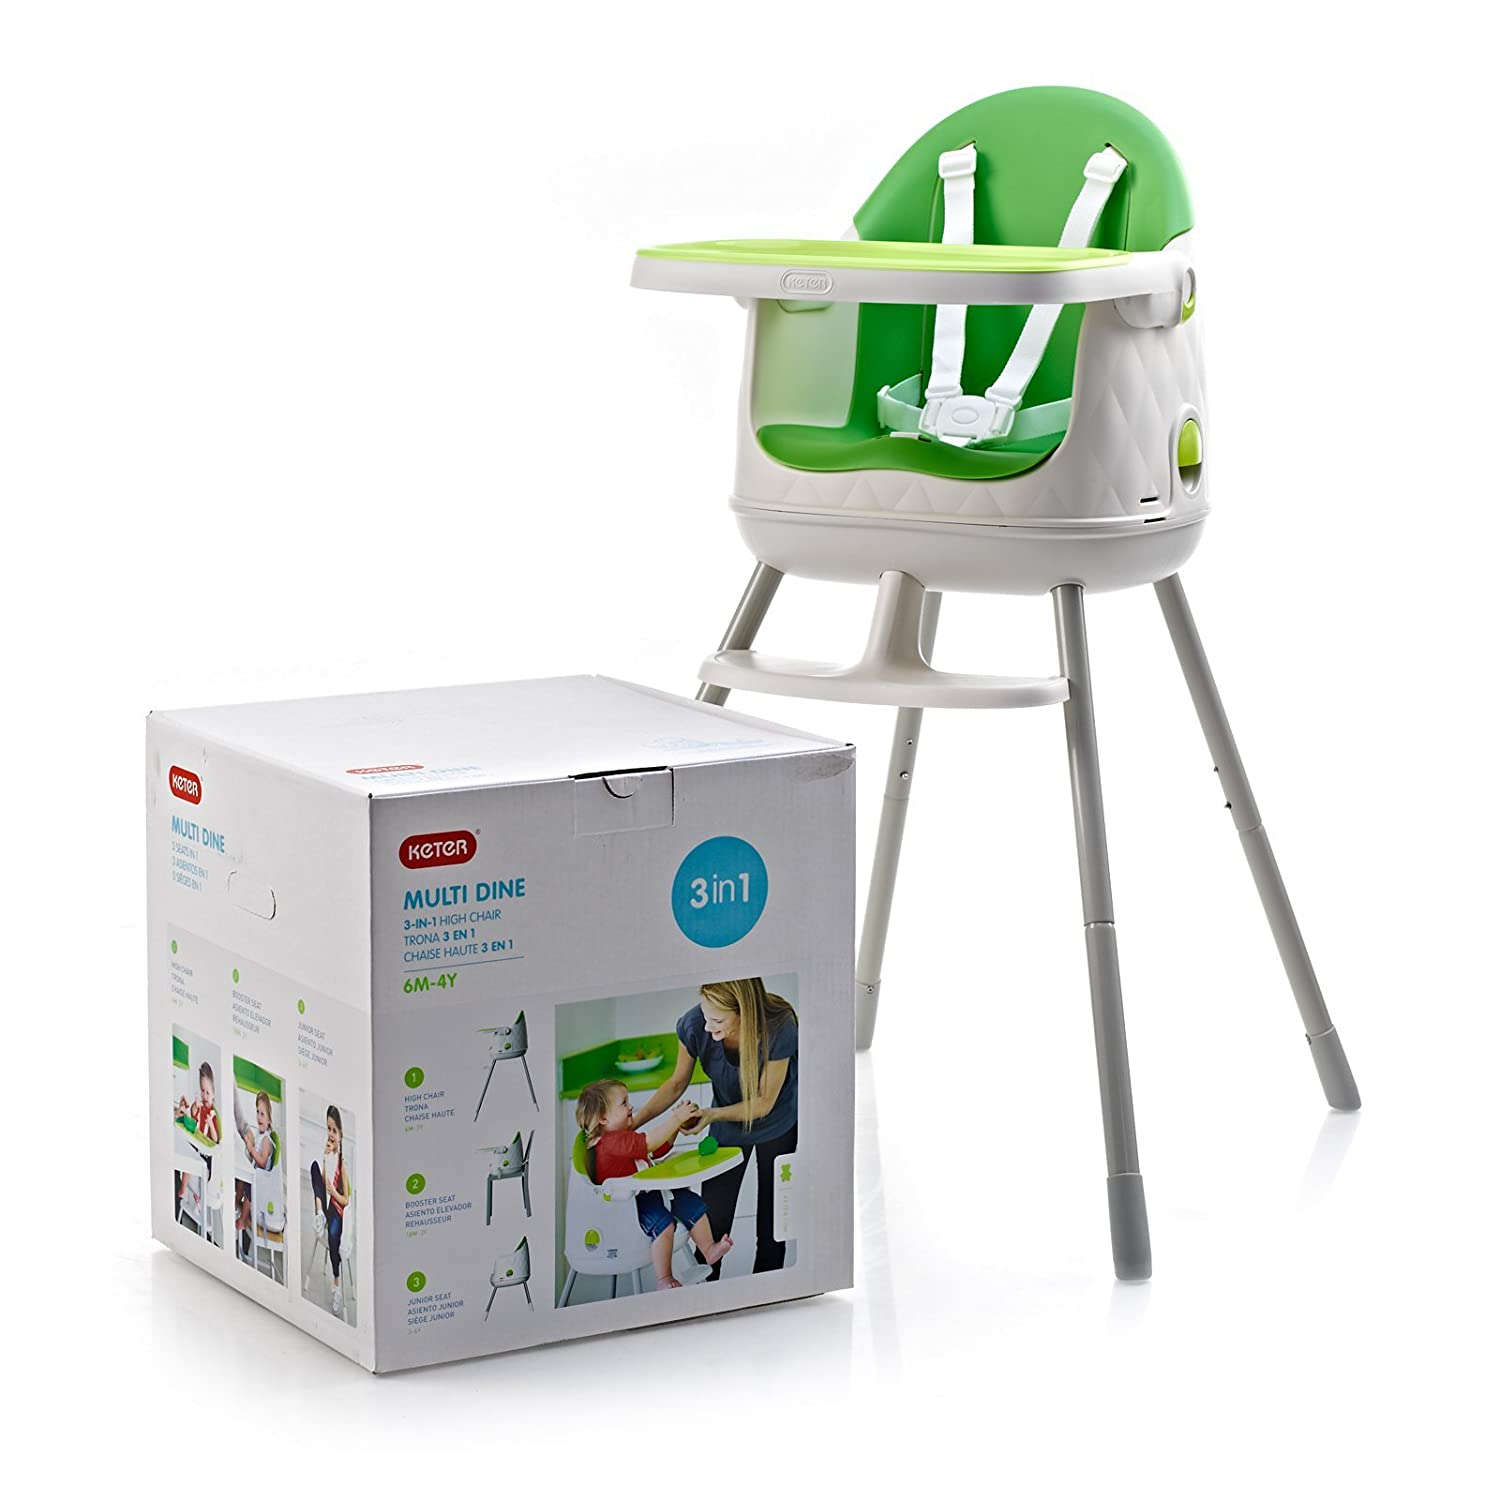 Incredible Keter Multi Dine Baby Child Infant Portable High Feeding Chair Booster Seat Green Pabps2019 Chair Design Images Pabps2019Com